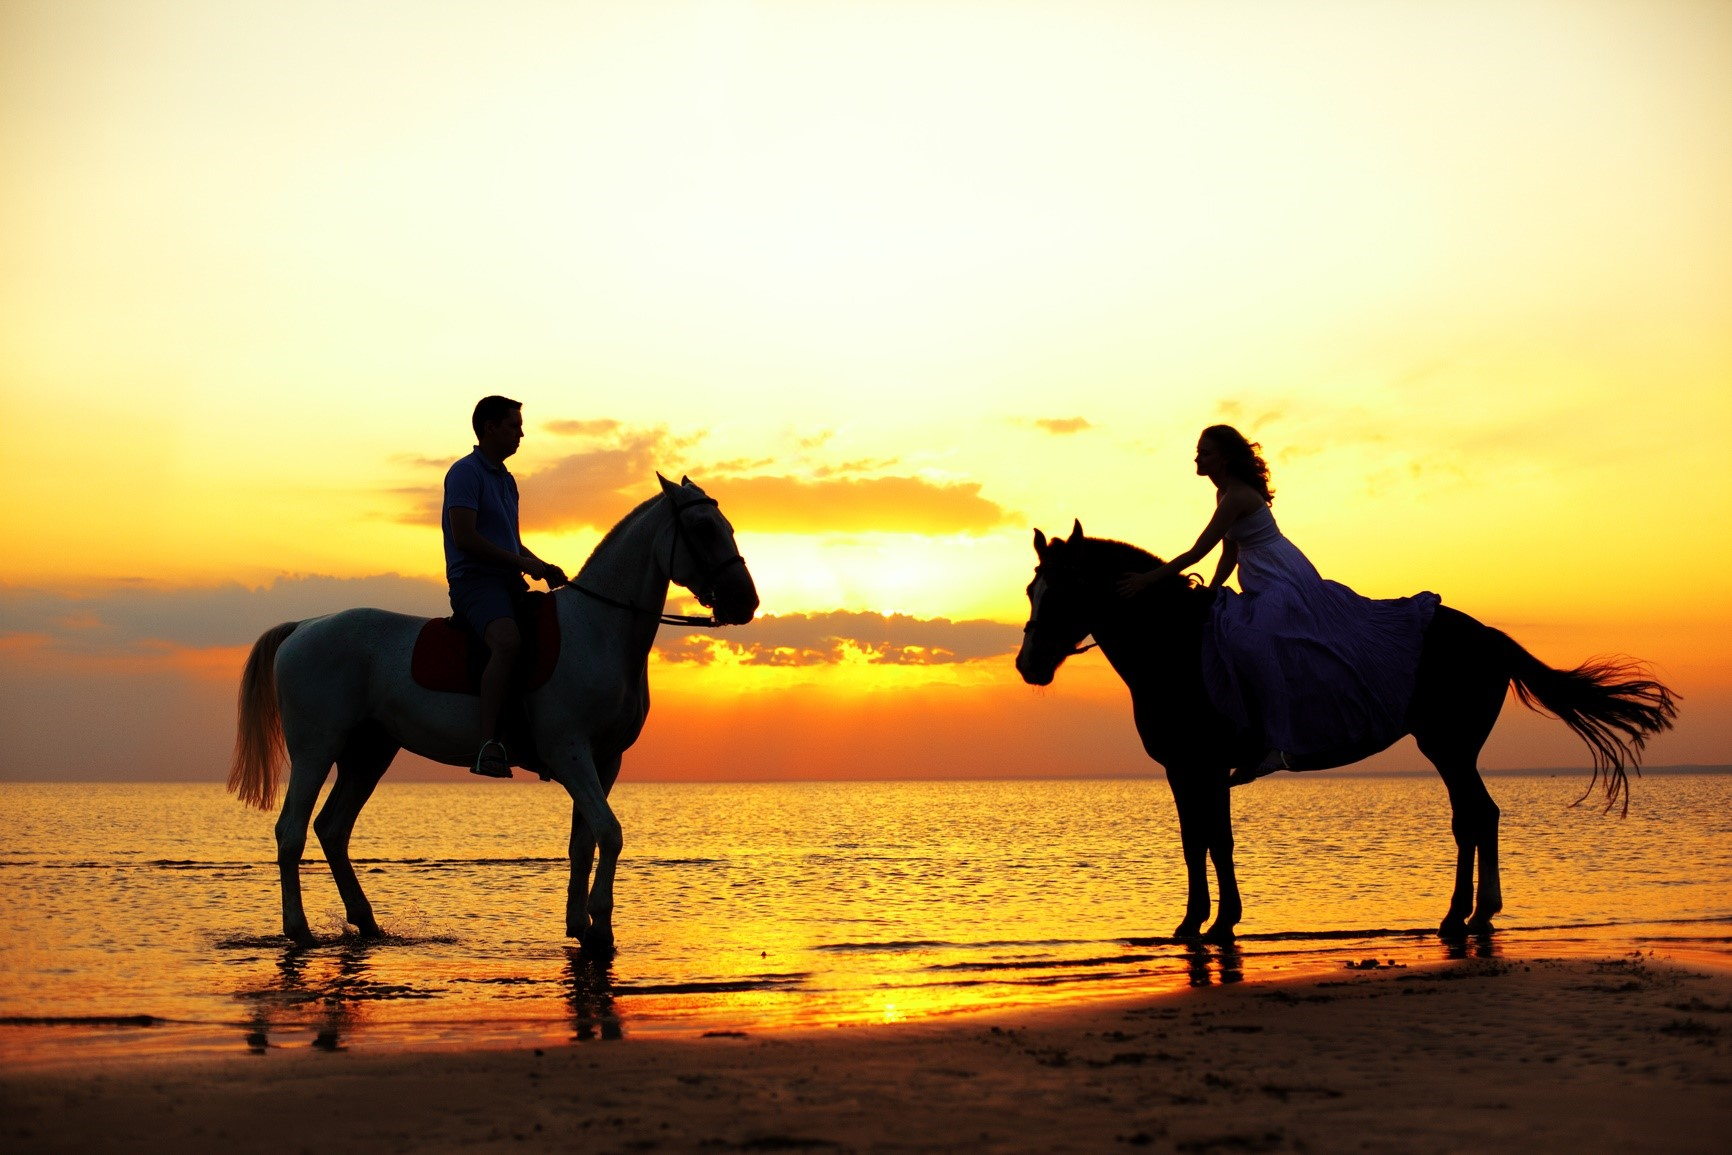 Horseback Riding - Two riders on horseback at sunset on the beach. Lovers ride horse